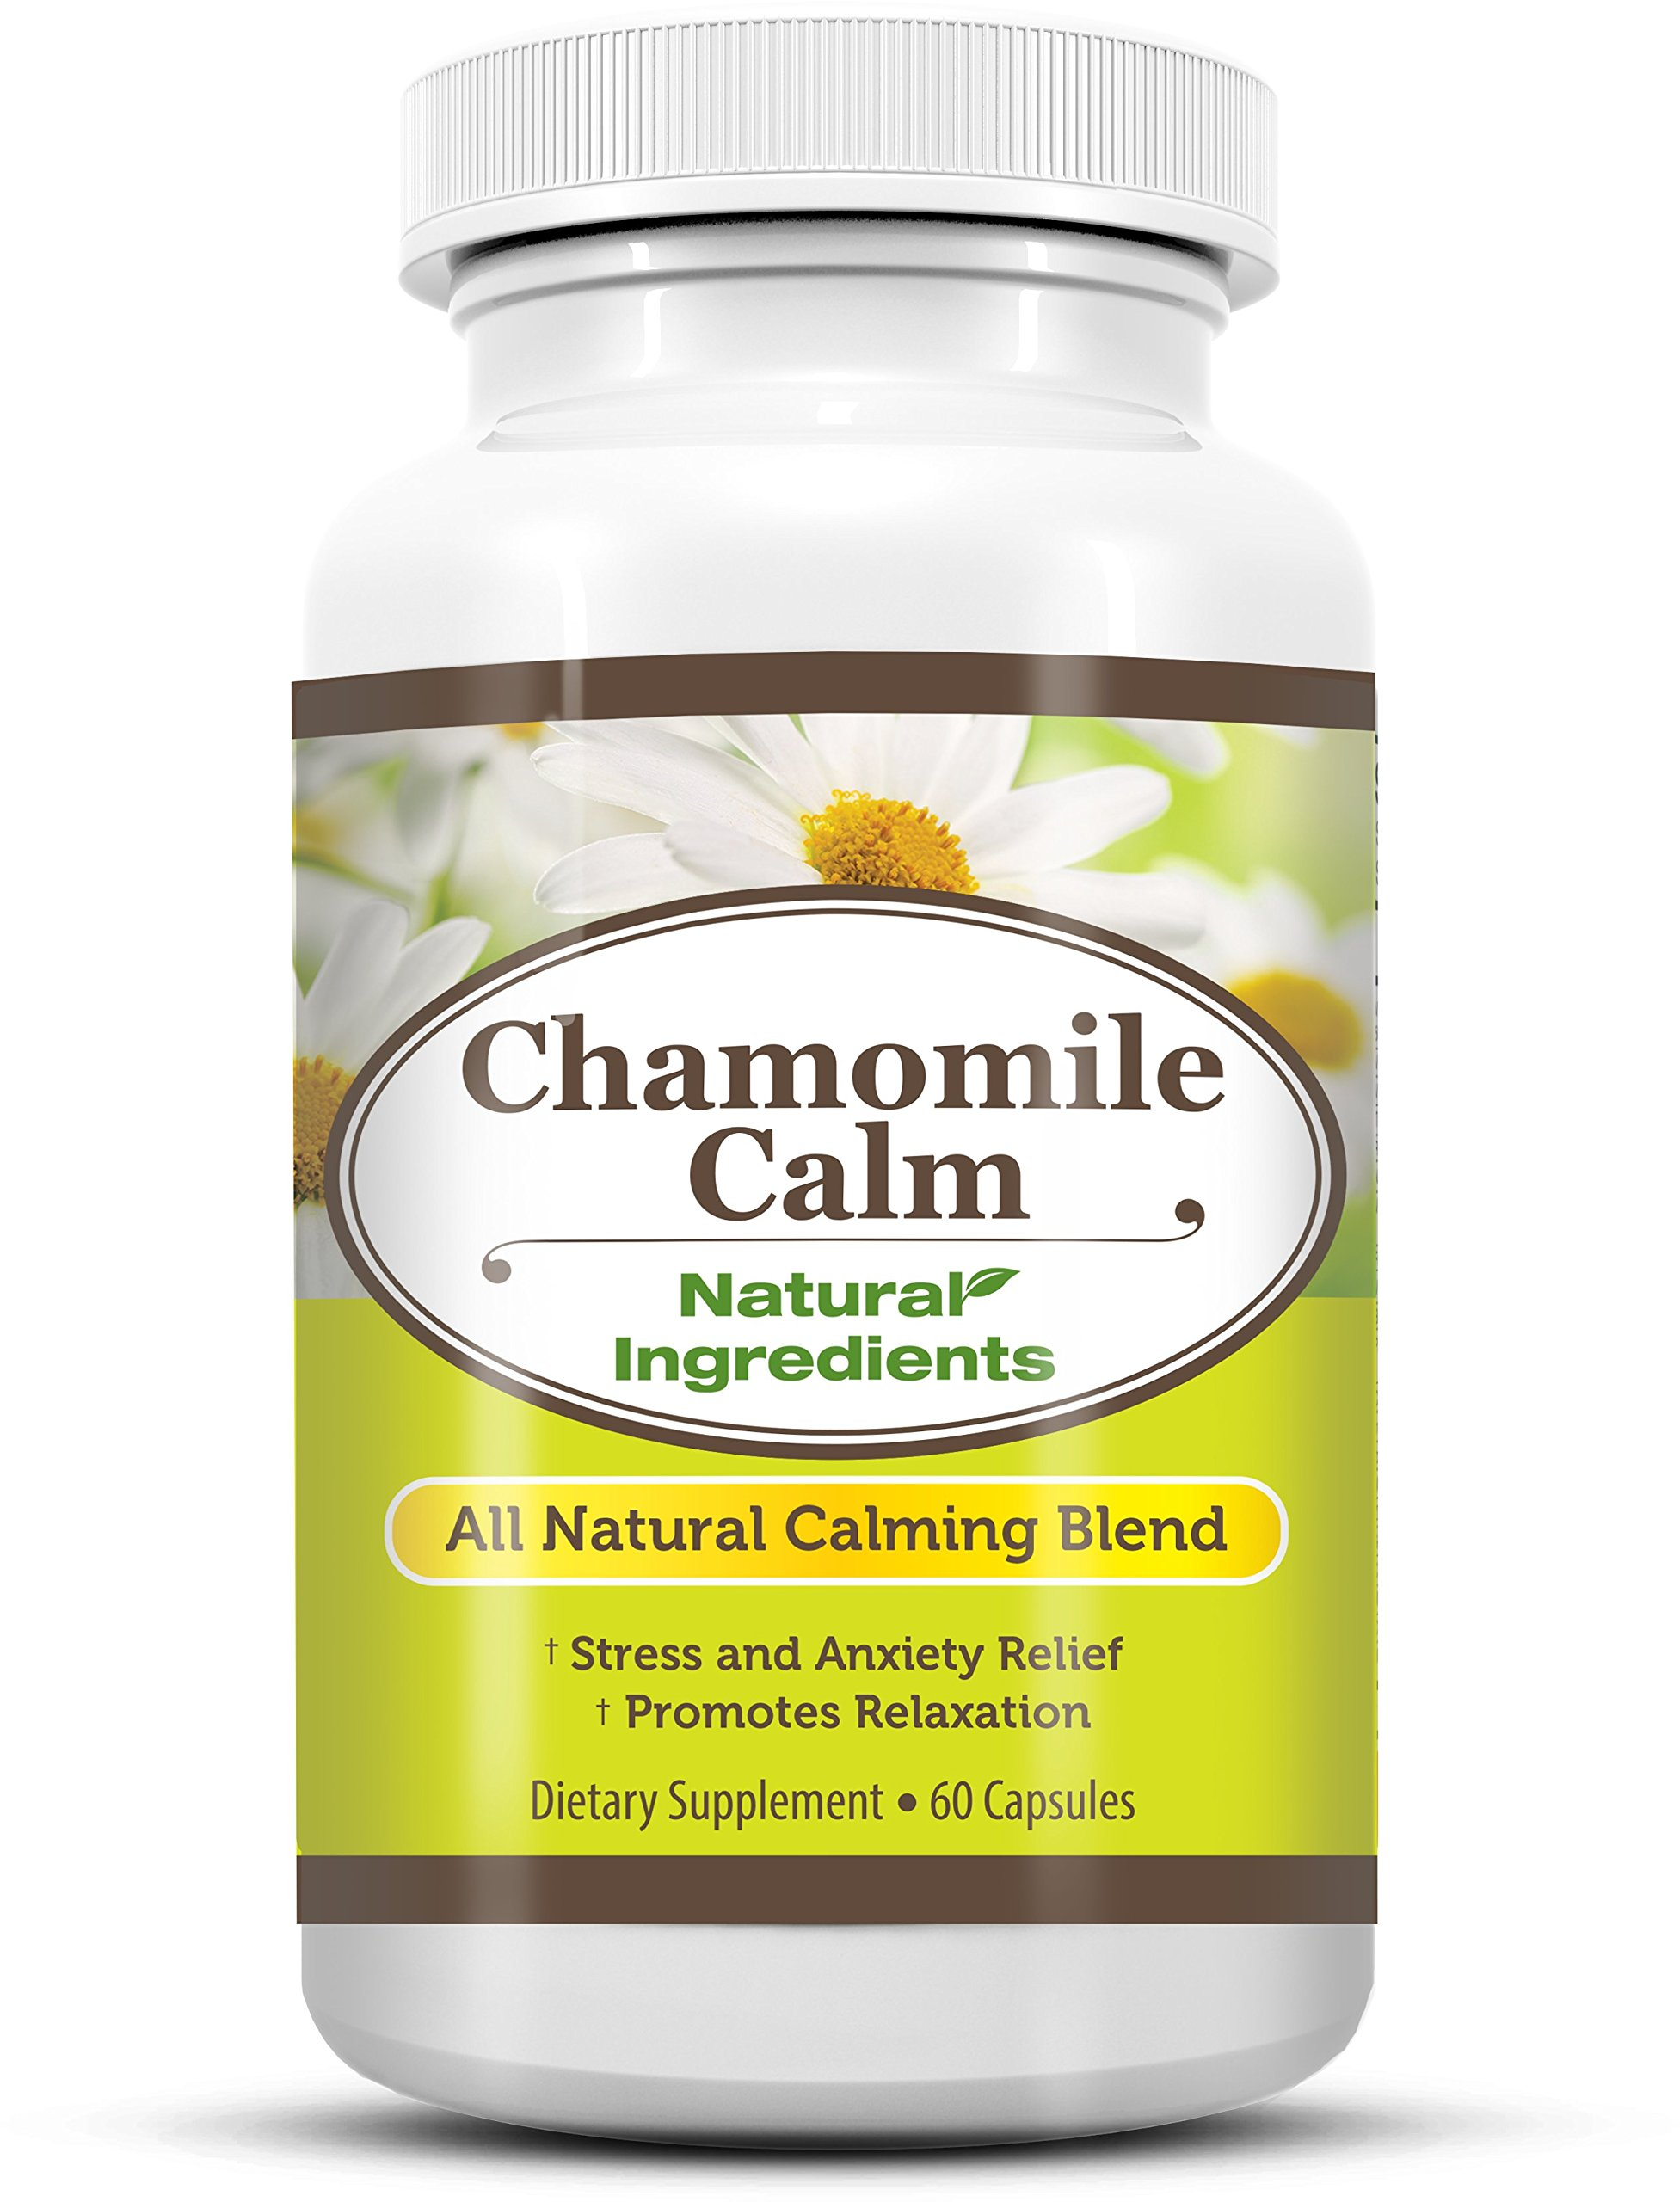 Chamomile Calm - Anti Anxiety & Stress Relief Supplement, Reduce Your Stress and Improve Your Mood, Made in USA